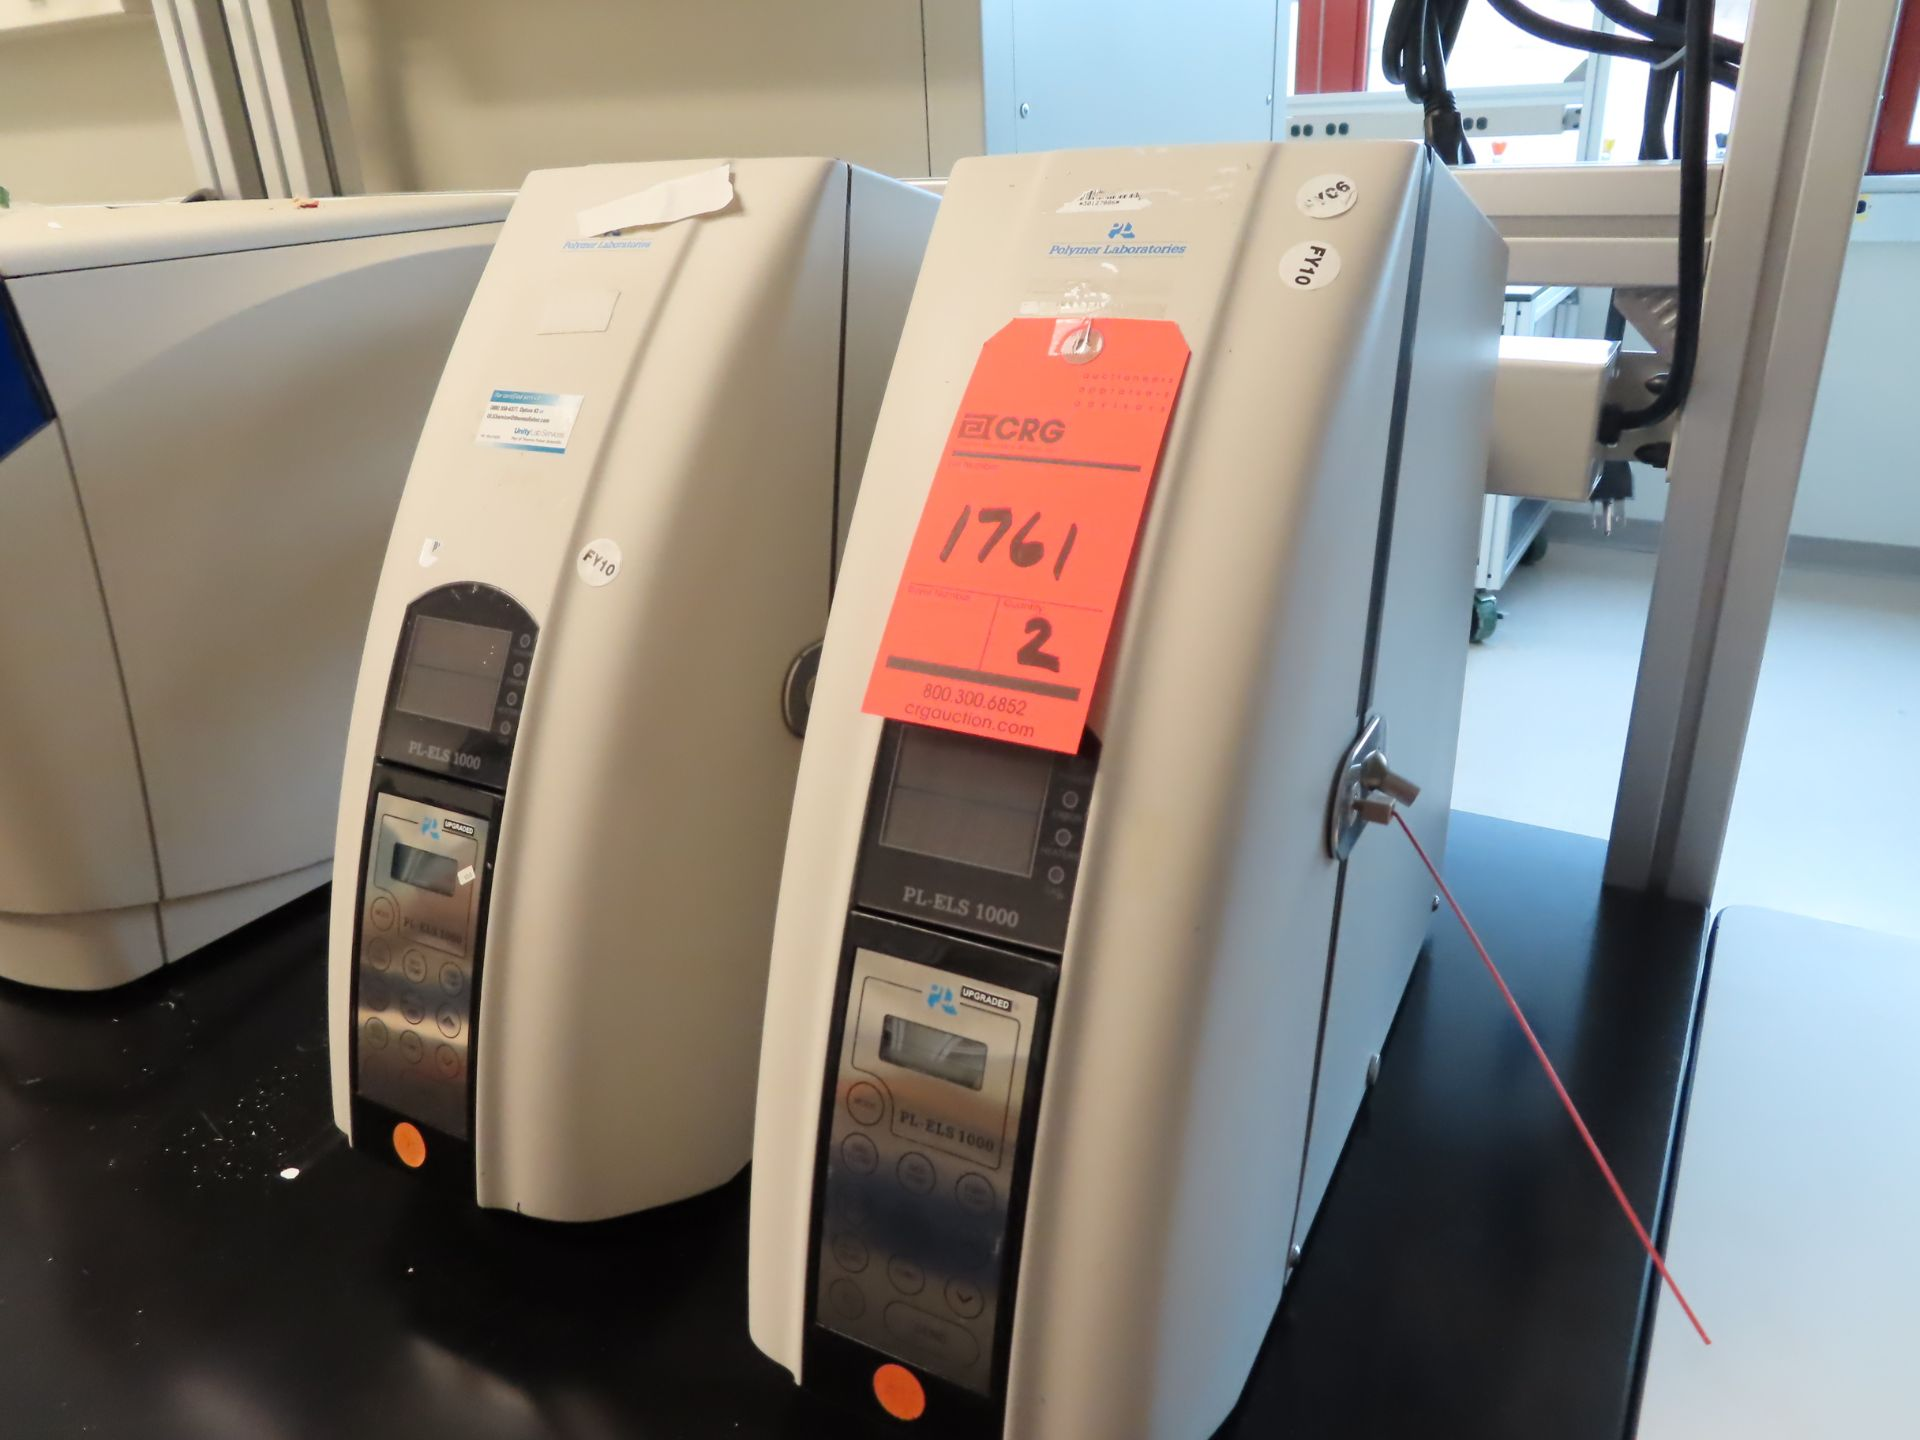 Lot 1761 - Lot of (2) Polymer Laboritories PL-ELS 1000 Evaporative light scattering detector, located in B